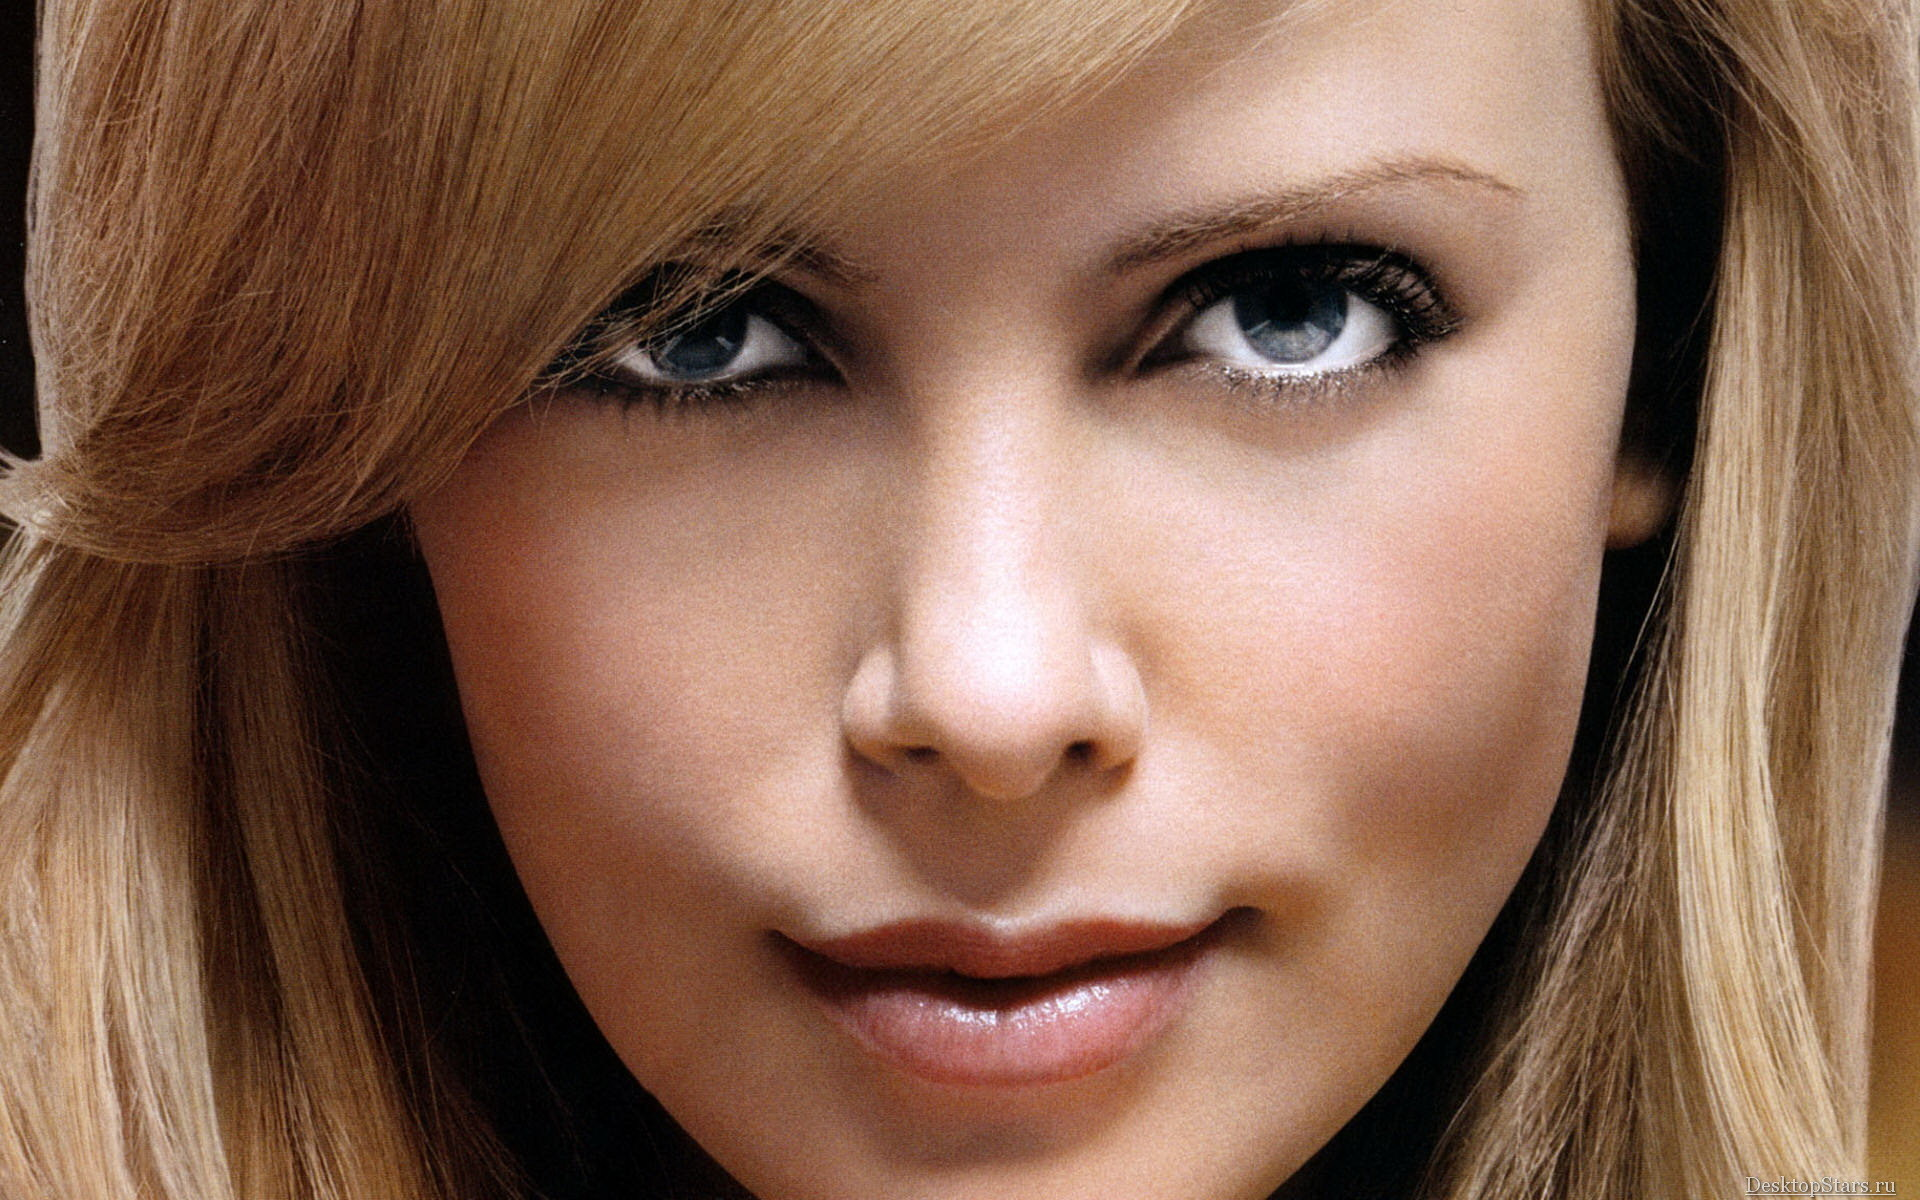 woman charlize theron faces